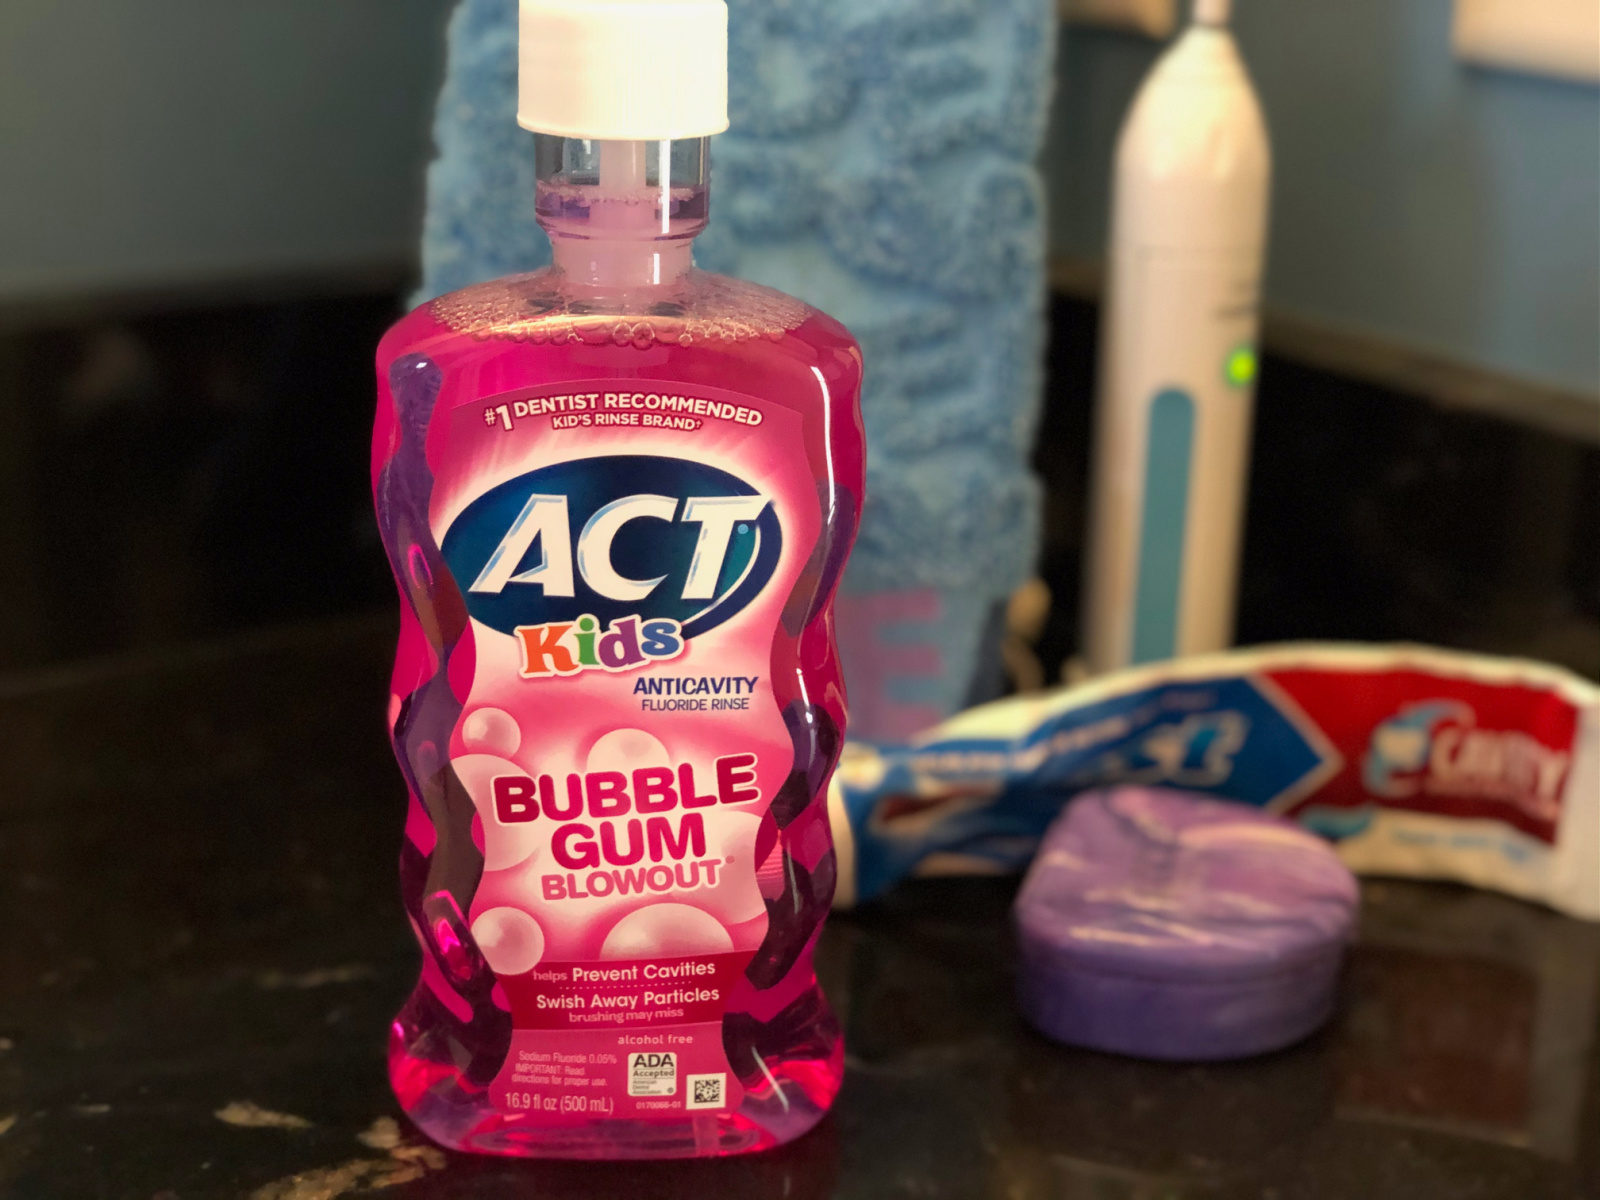 Act Kids Mouthwash As Low As $1.79 At Publix (Plus Cheap Adult Products Too!) on I Heart Publix